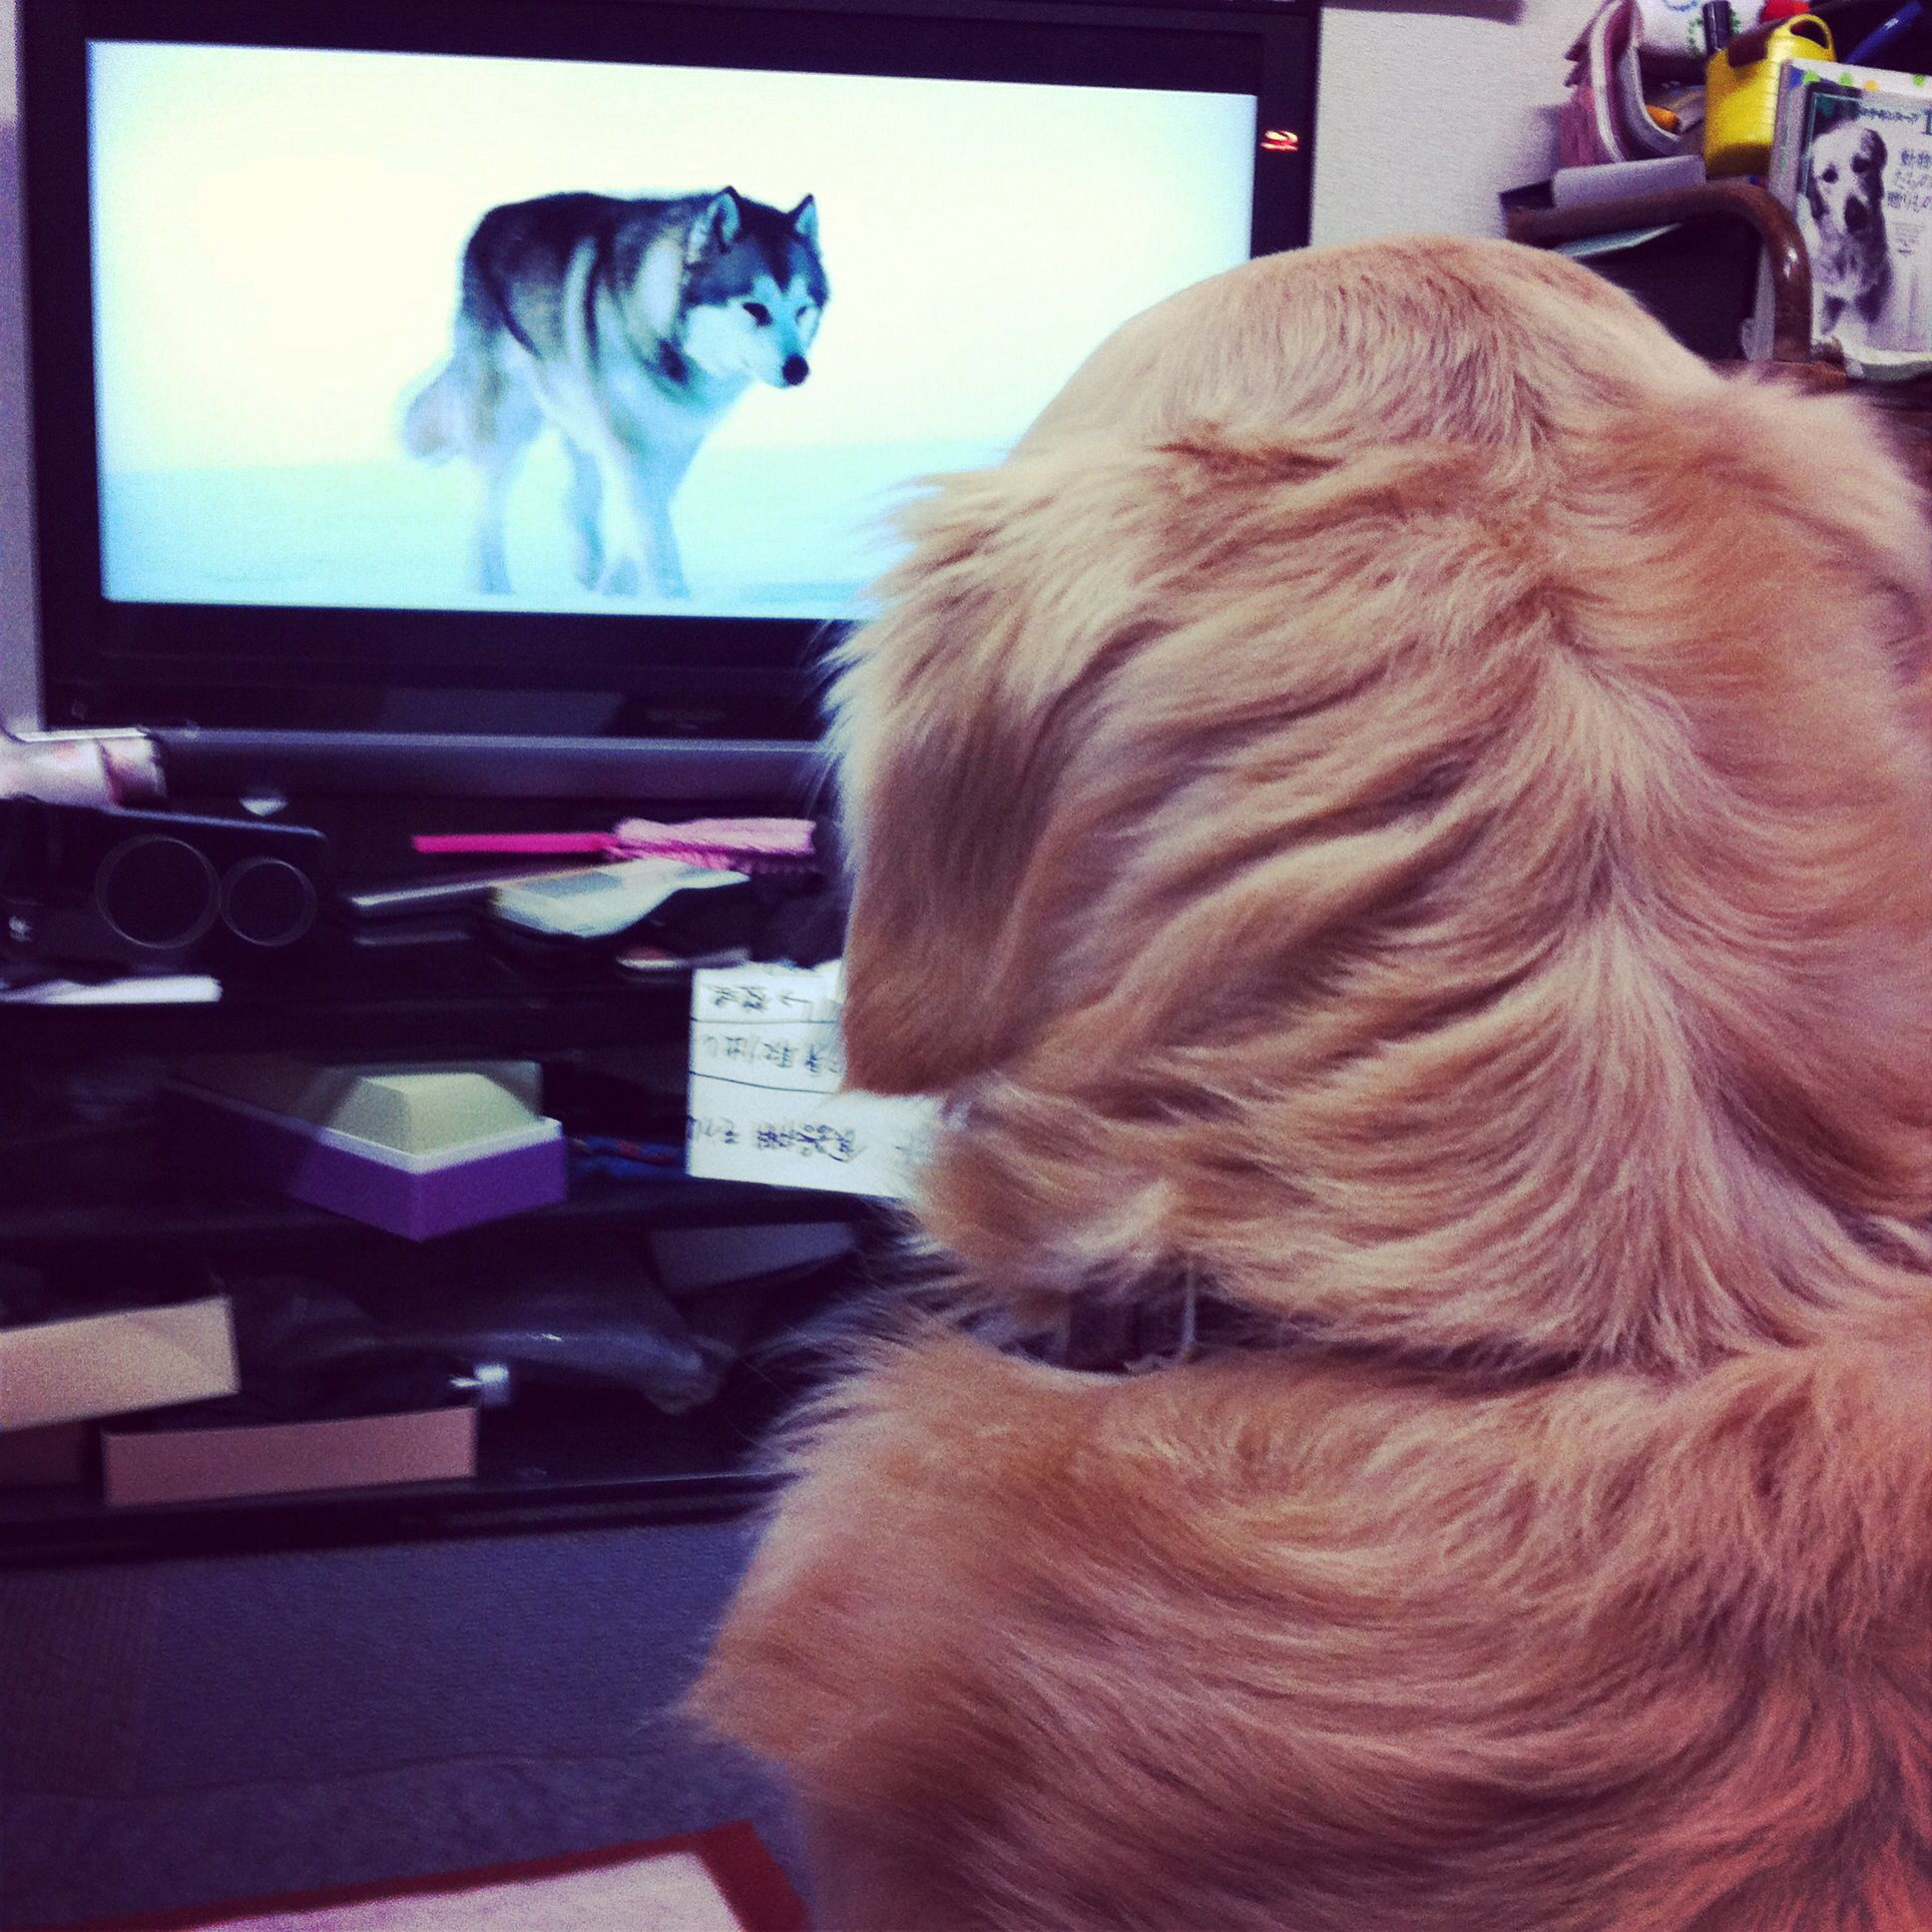 My dog is watching a surviving dog in South Pole on TV.  He learns how to live in the wild, I guess.  Golden retriever, you are funny.